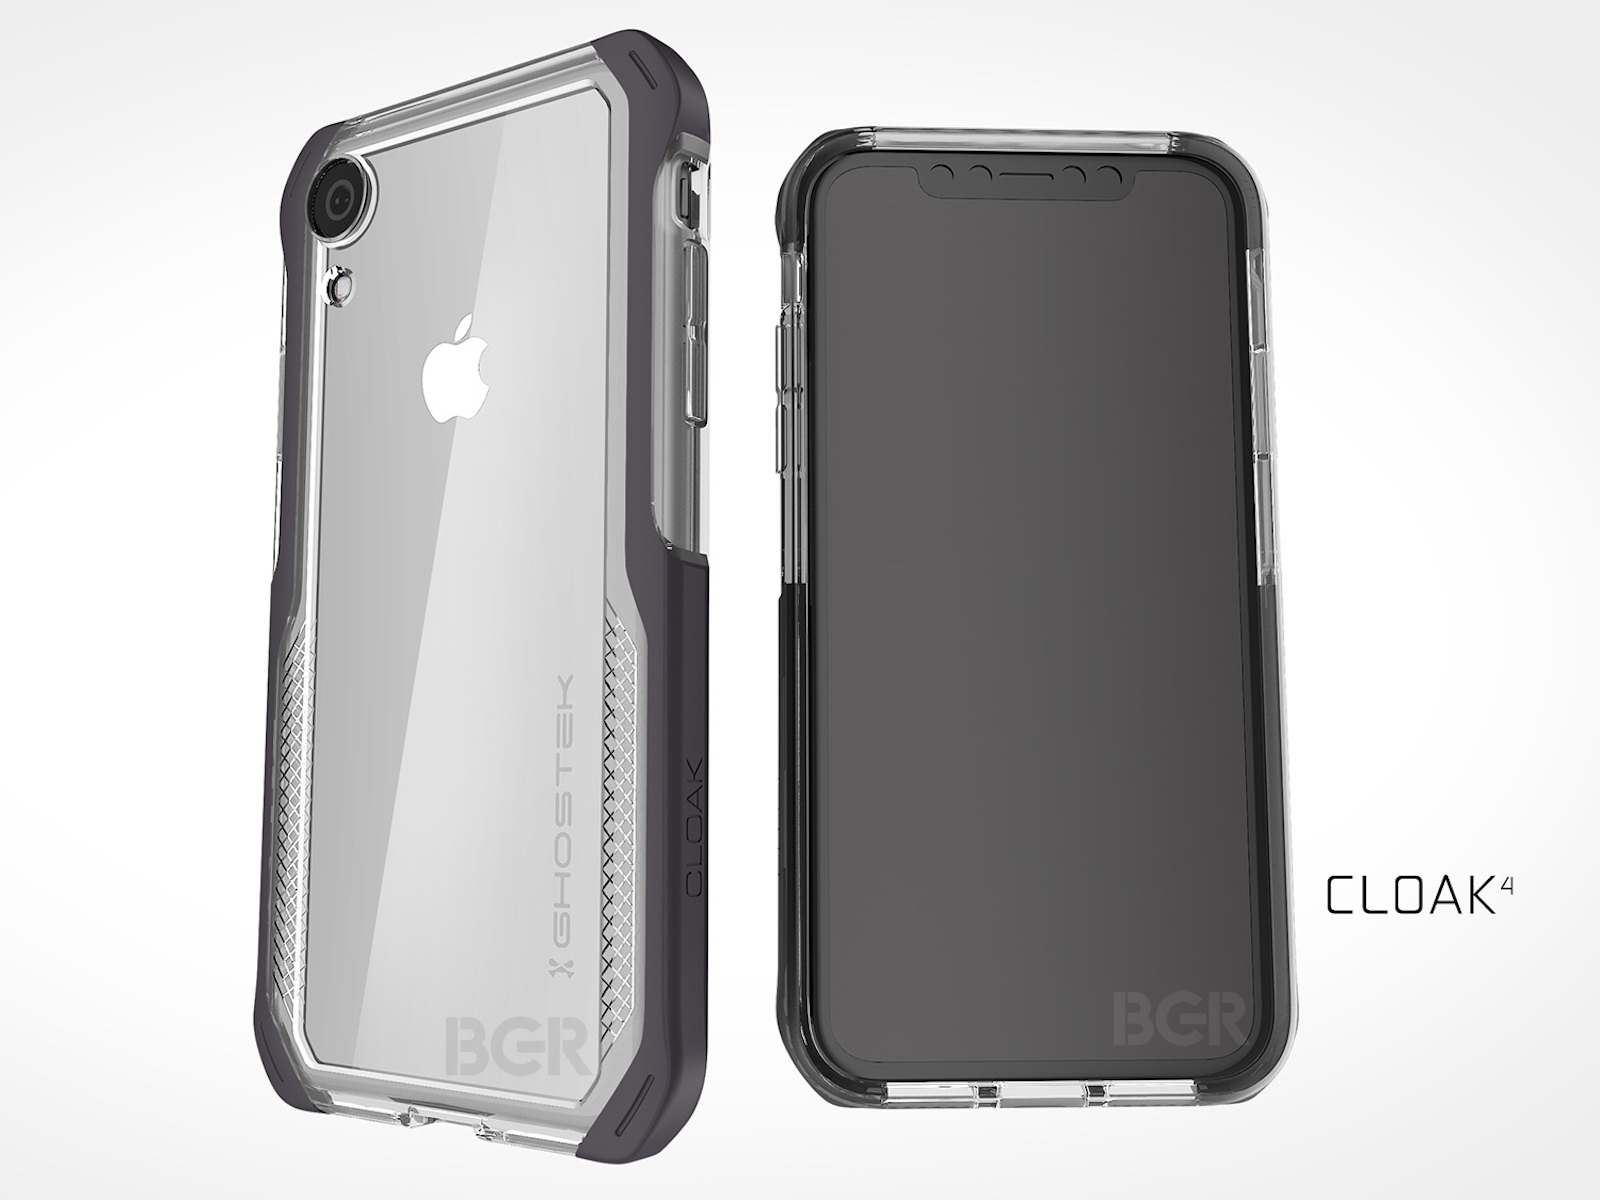 Bgr iphone 61